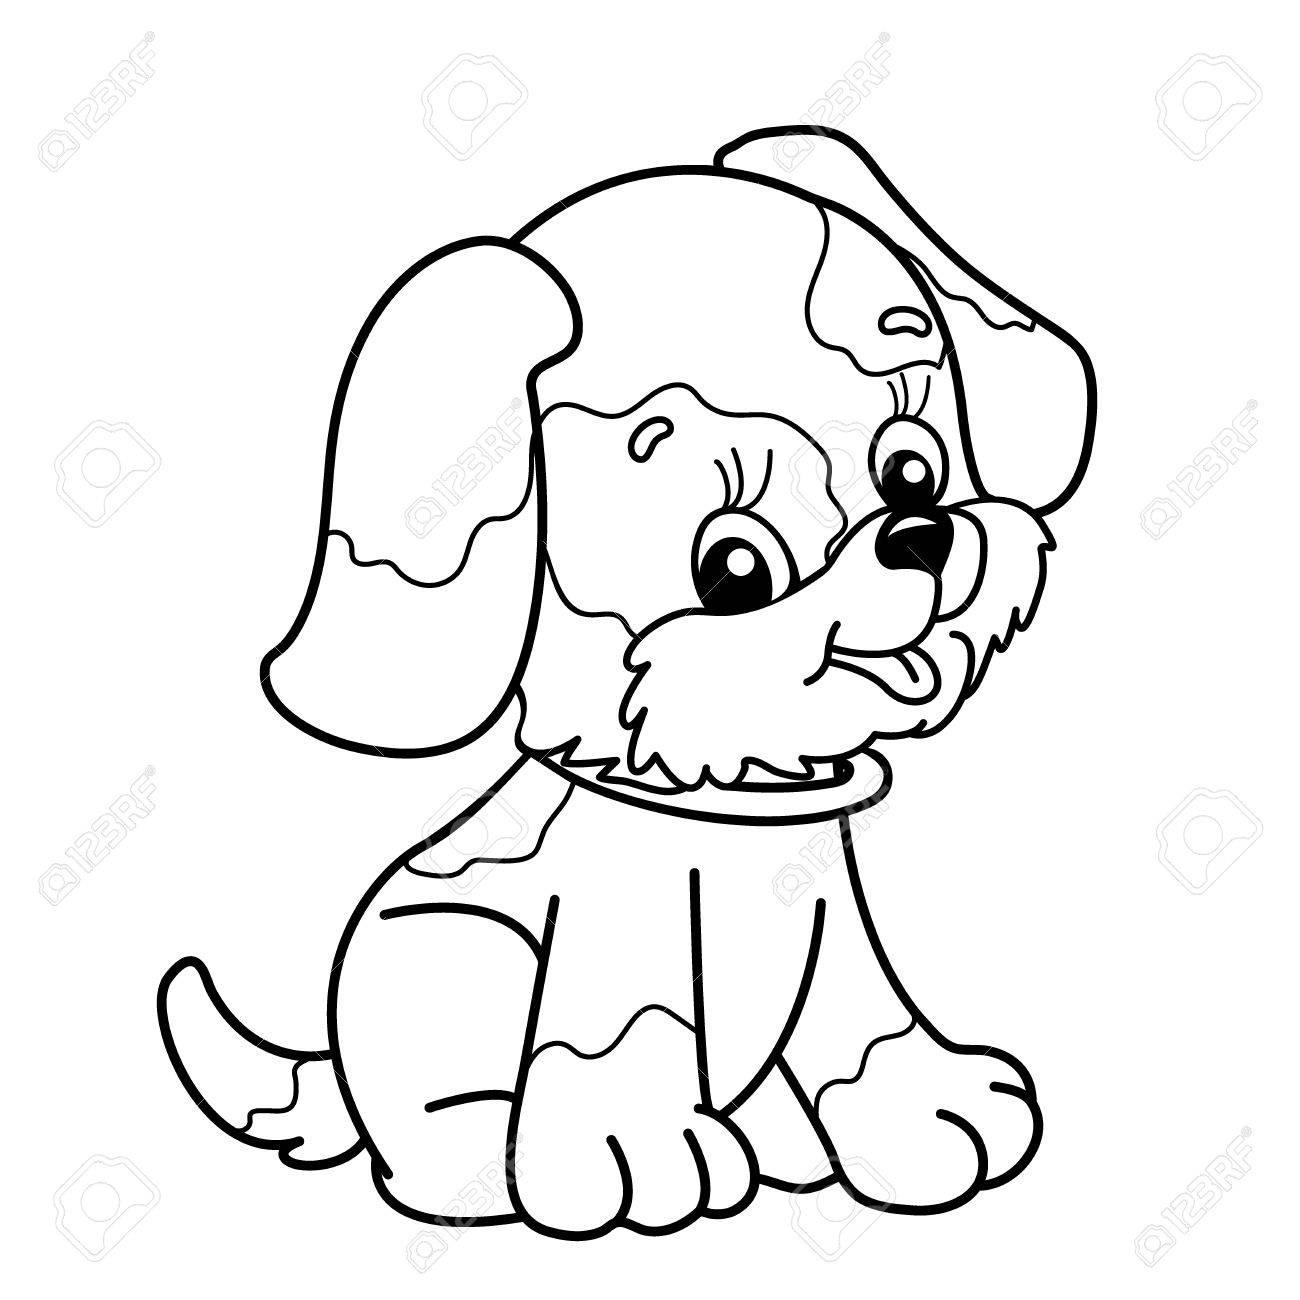 coloring page outline of cartoon dog cute puppy sitting pet coloring book for